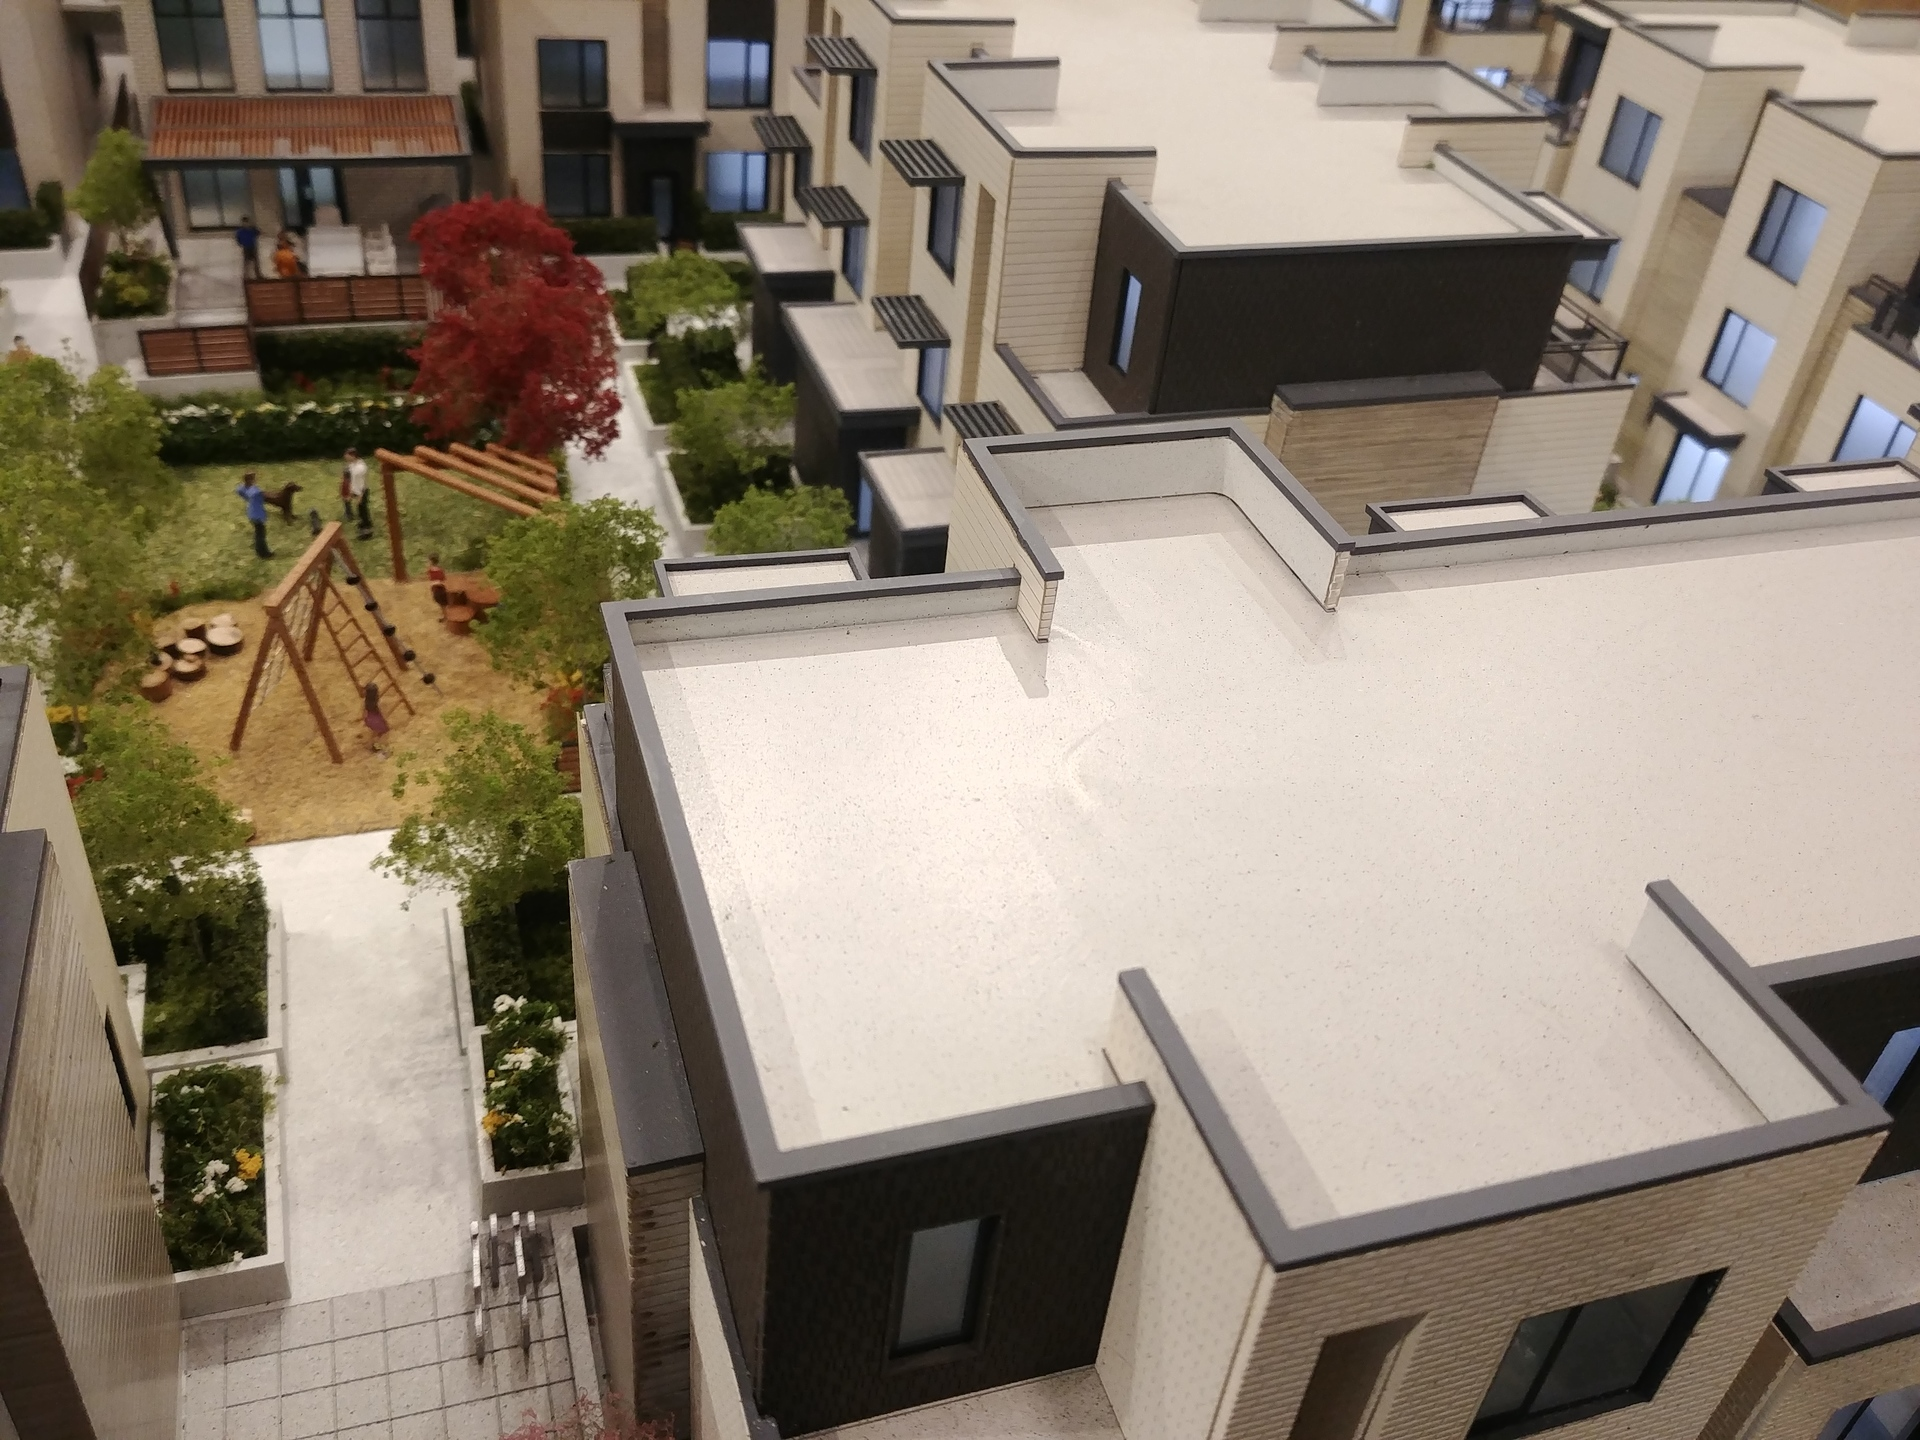 skagen-amenity-courtyard at Skagen townhomes (606 Foster Avenue, Coquitlam West, Coquitlam)